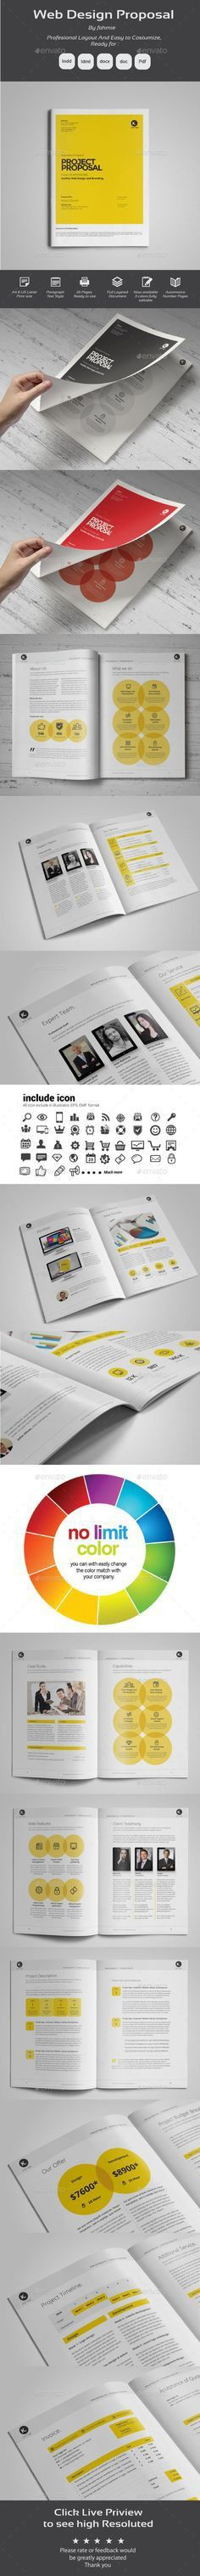 Web Design Proposal | Proposals, Proposal templates and Business ...